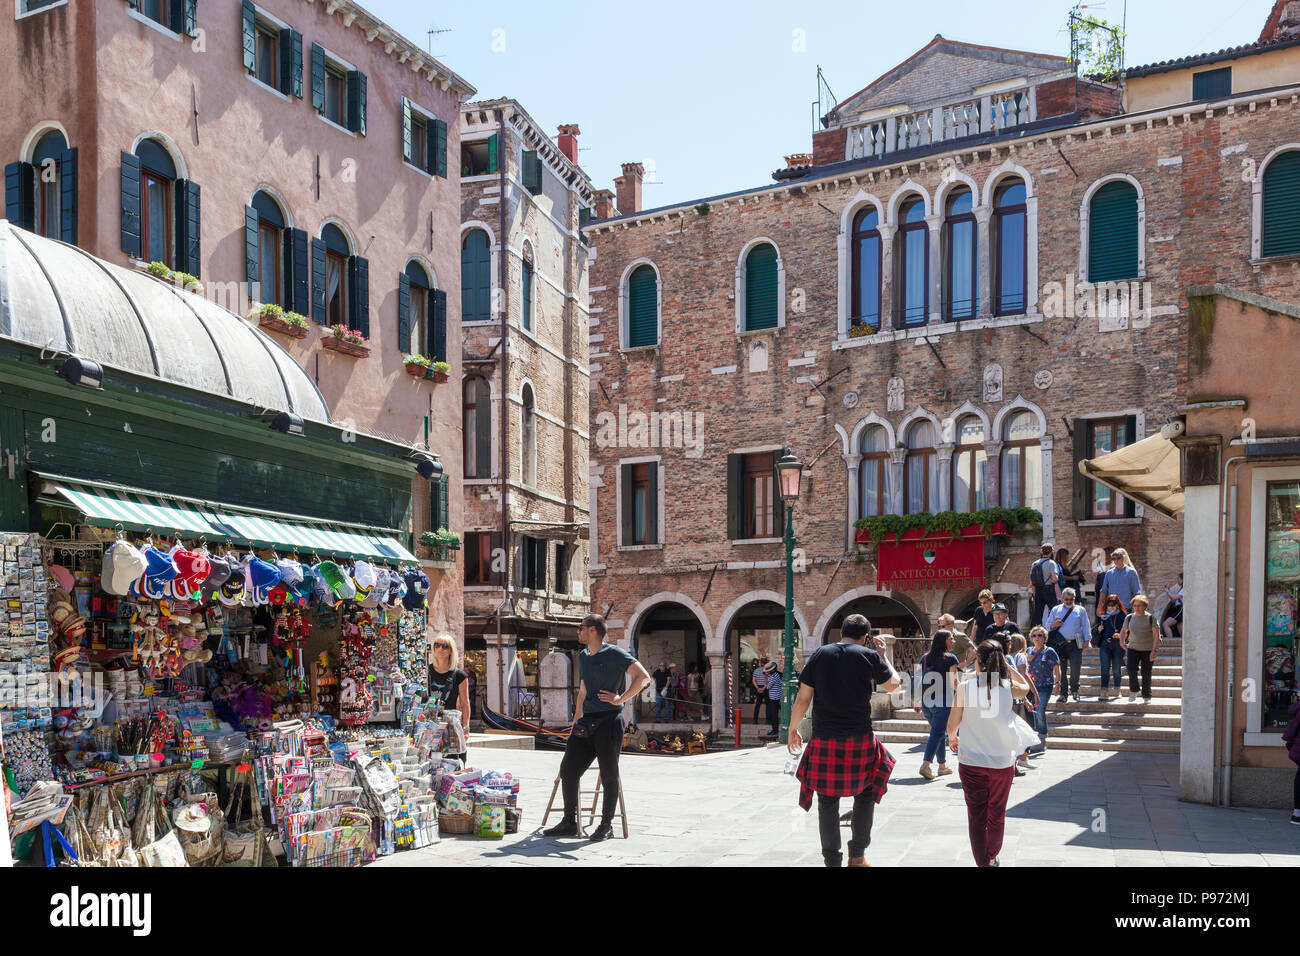 Campo Santi Apostoli and the Antico Doge Hotel, Cannaregio, Venice, Veneto, Italy with a news agent selling souvenirs and tourists - Stock Image